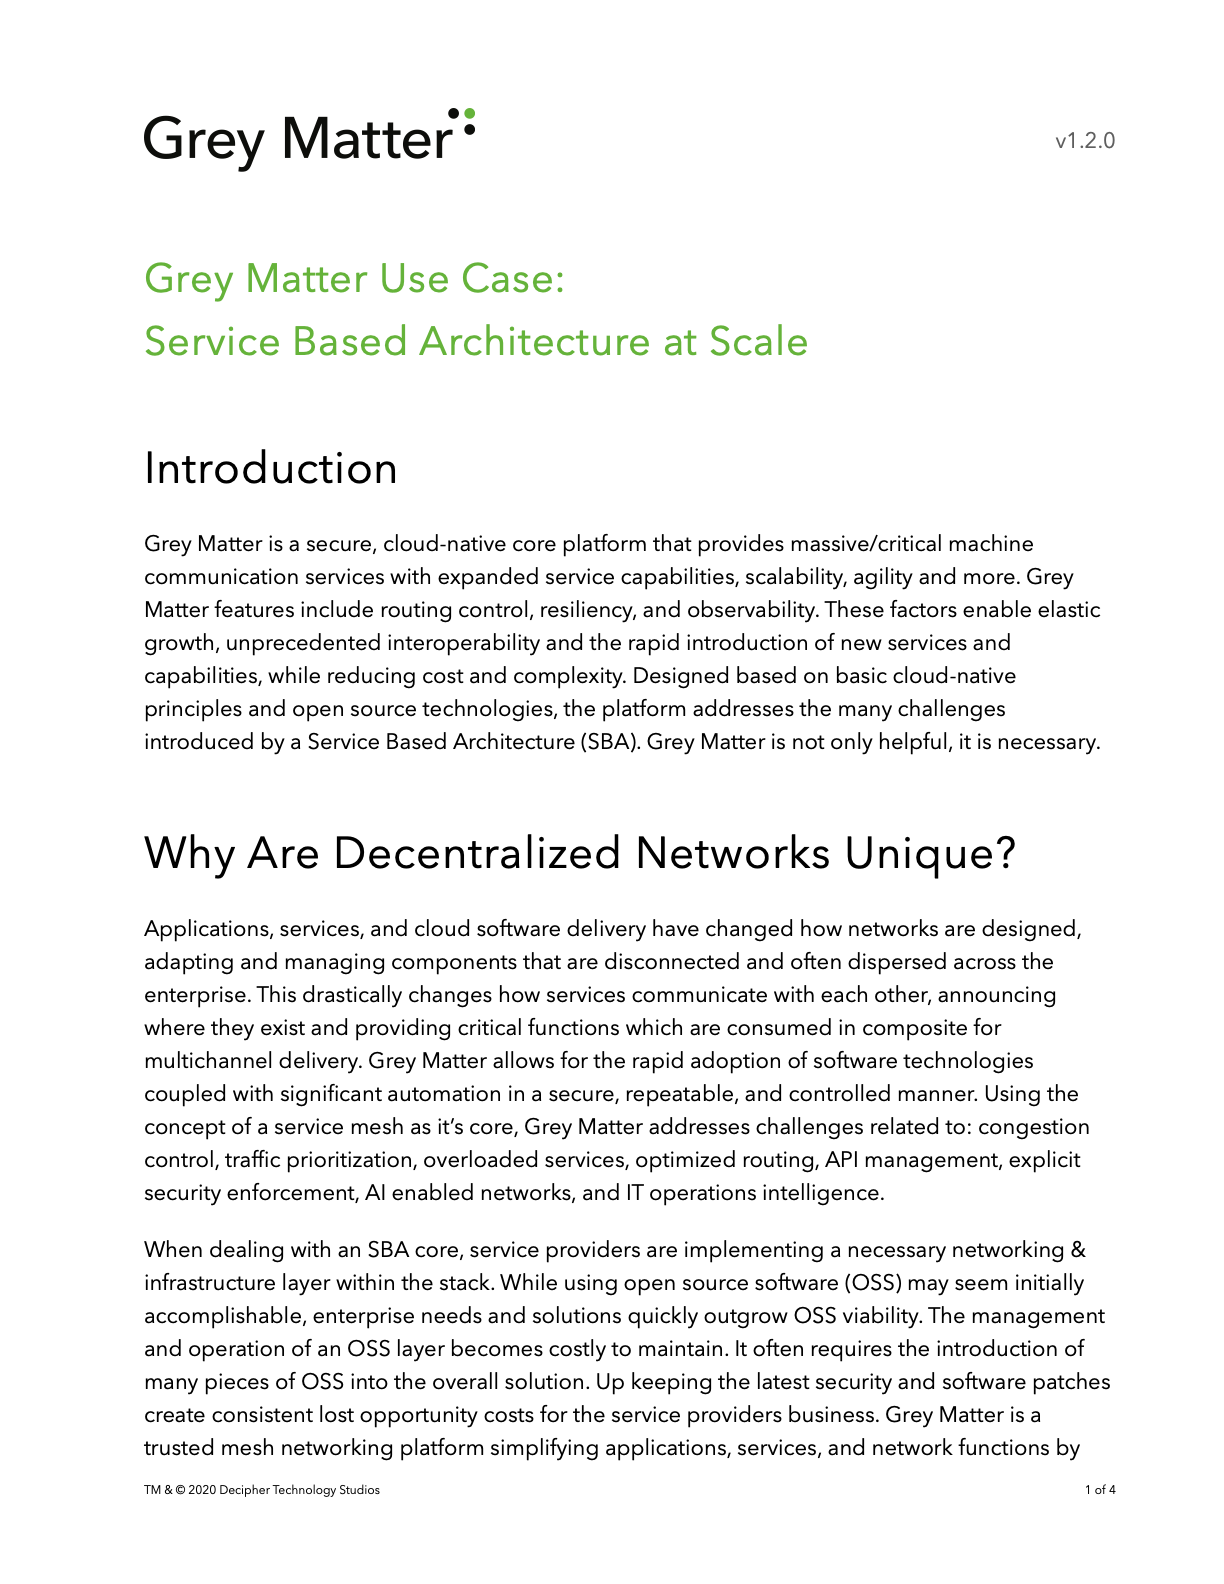 Article describing Grey Matter's benefits through service-based architecture at scale.